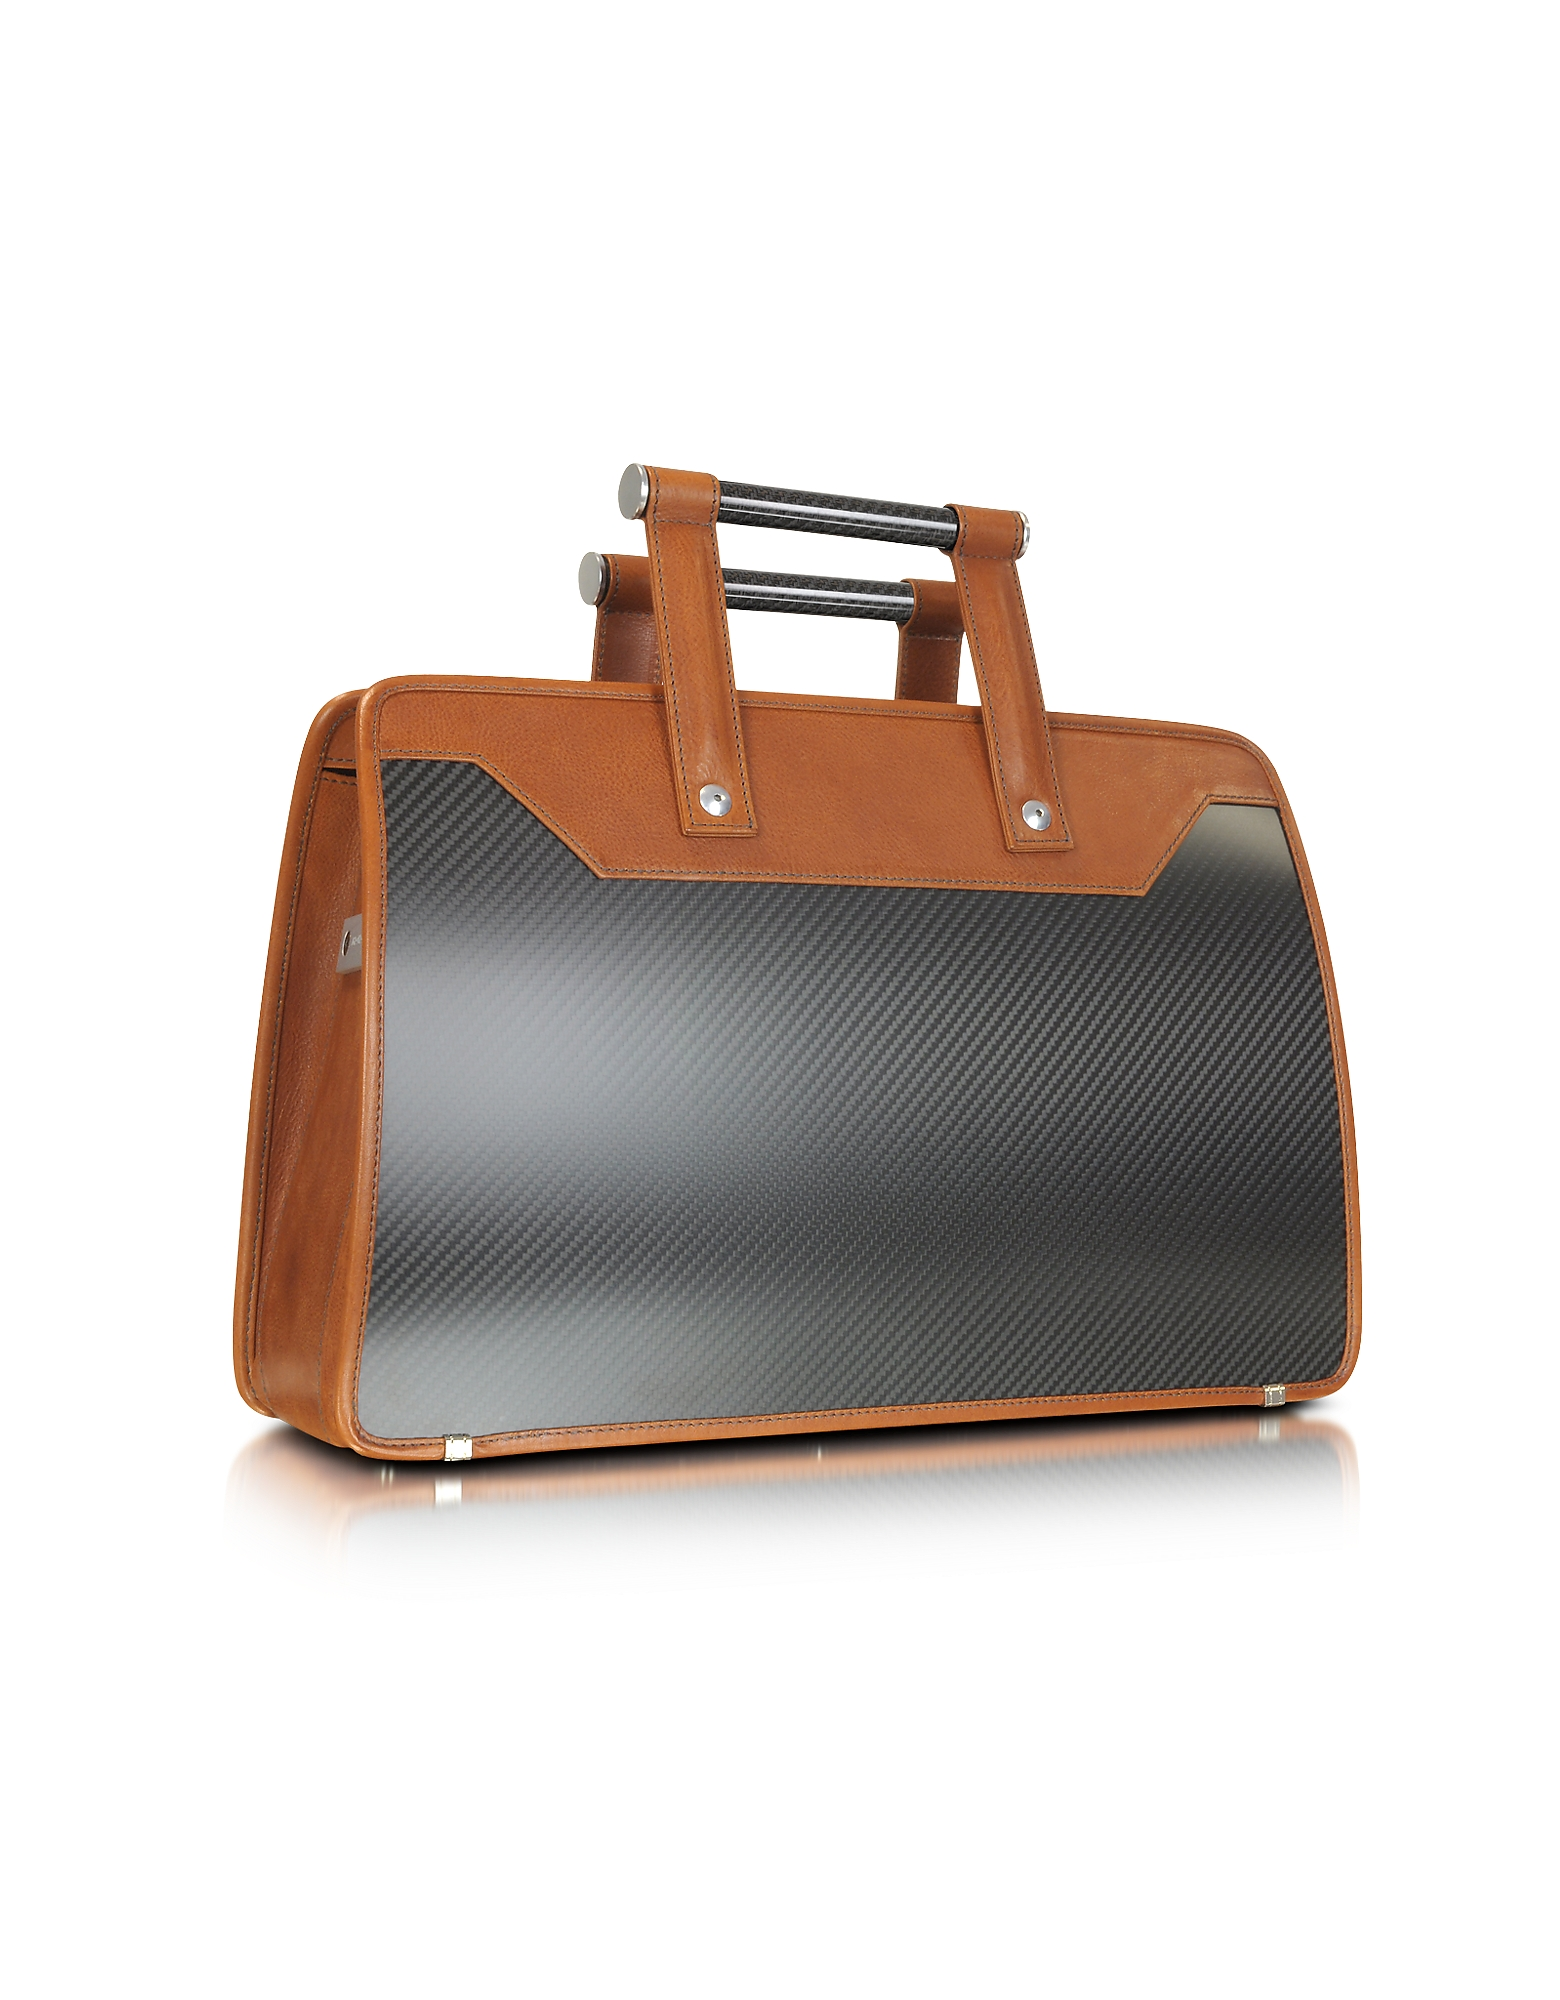 Aznom Briefcases, Carbon Business Vintage - Carbon Fiber Briefcase